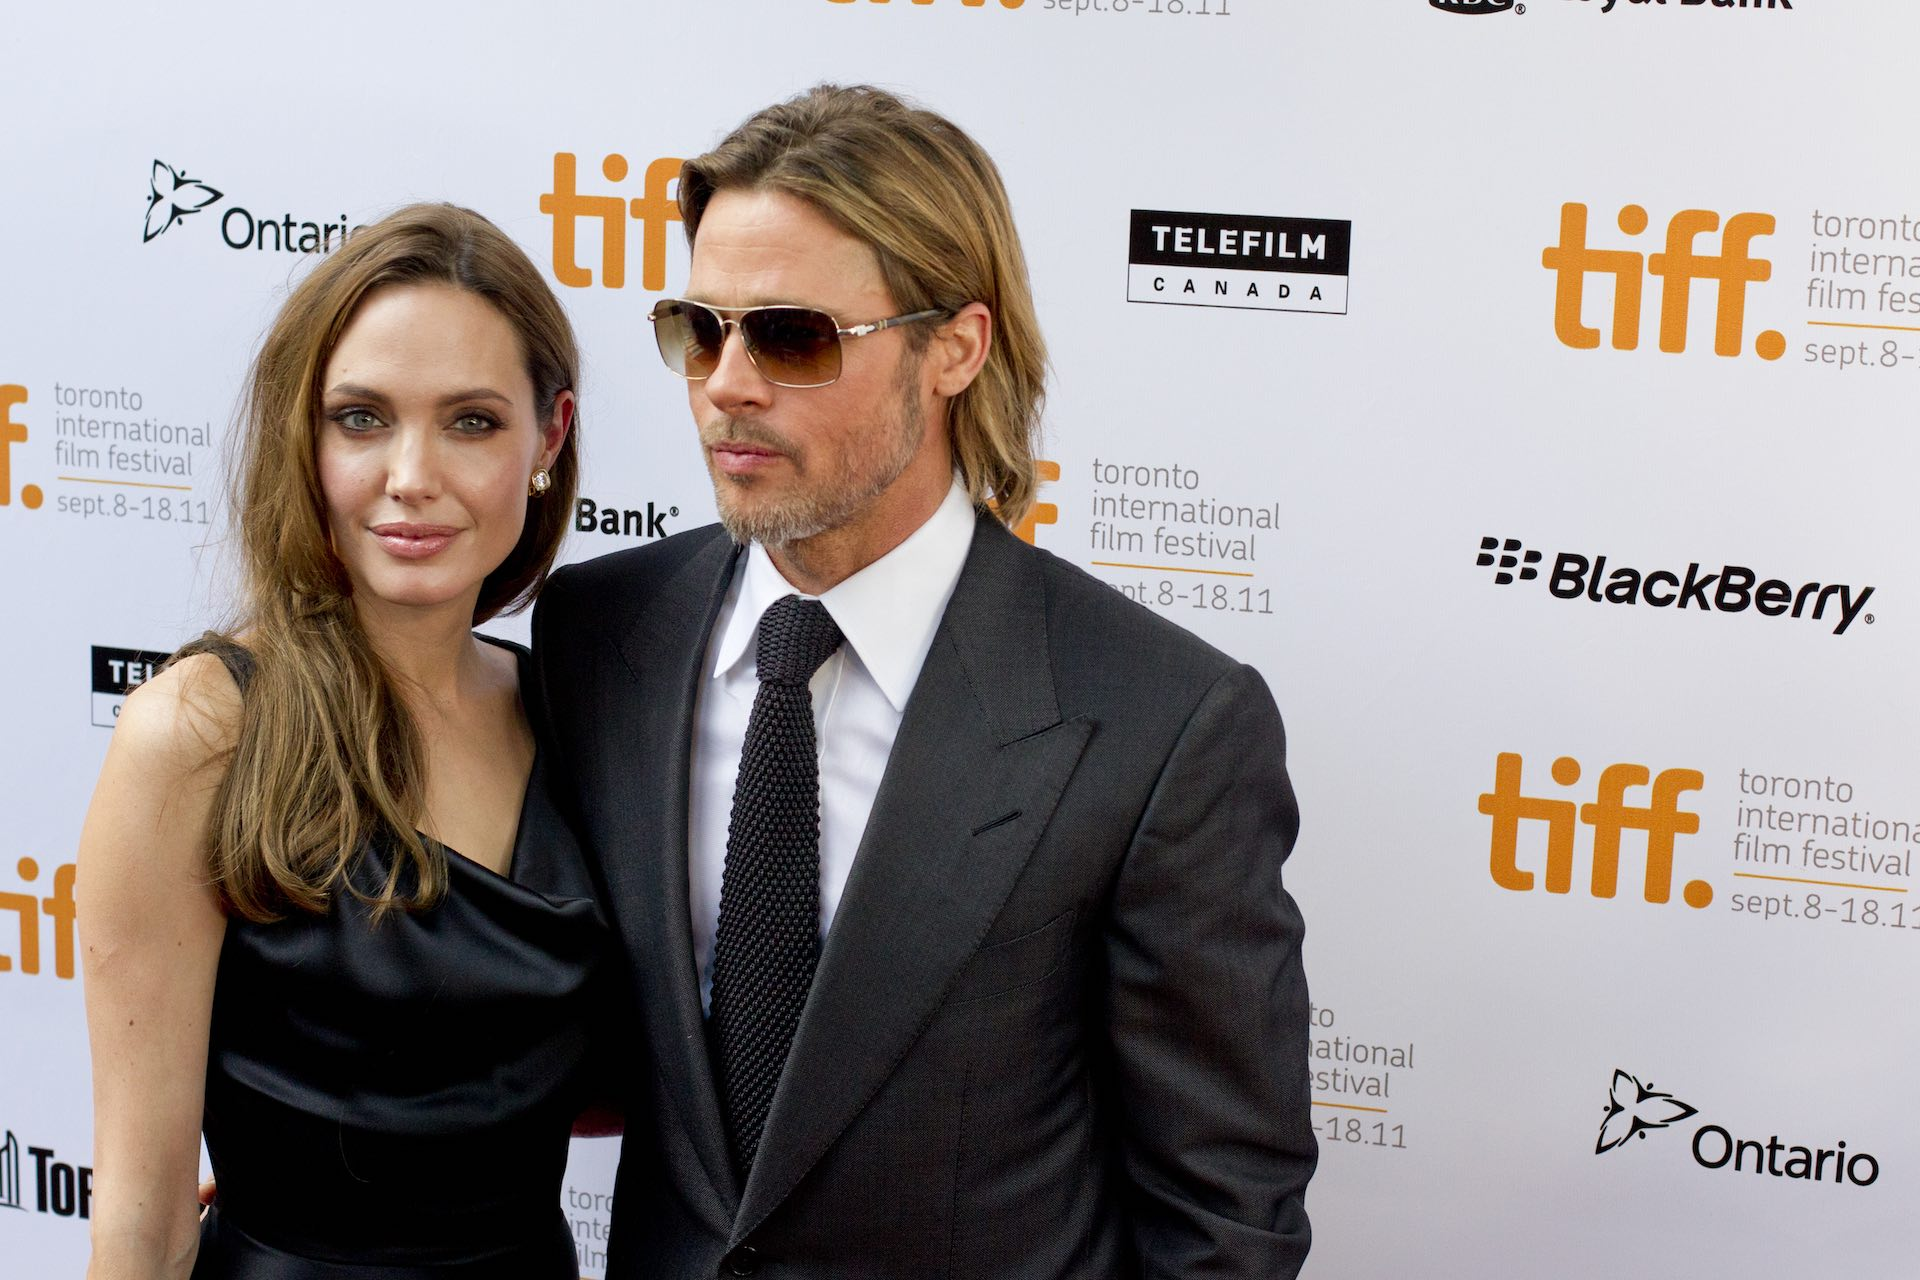 brangelina stagemilk showreels